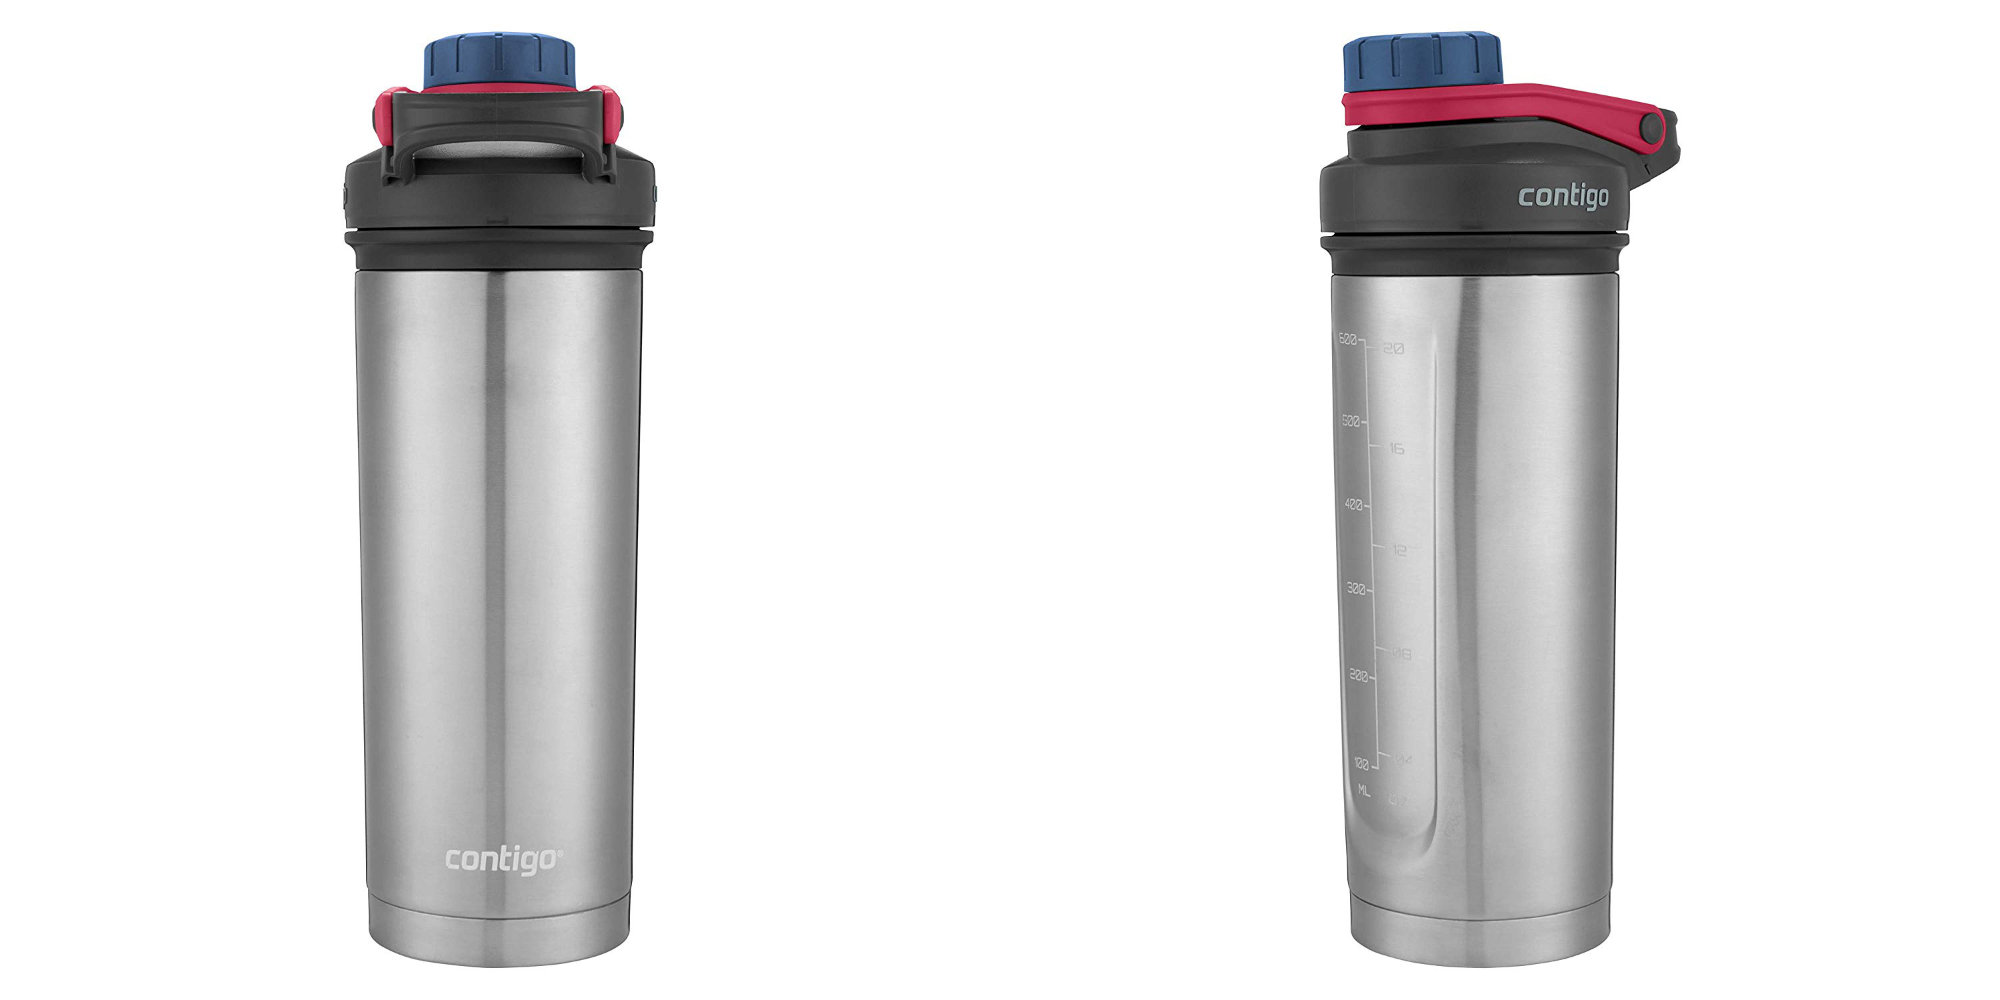 Contigo's Vacuum-Insulated Shaker Bottle just hit an incredible low of $6 Prime shipped (Reg. $20)